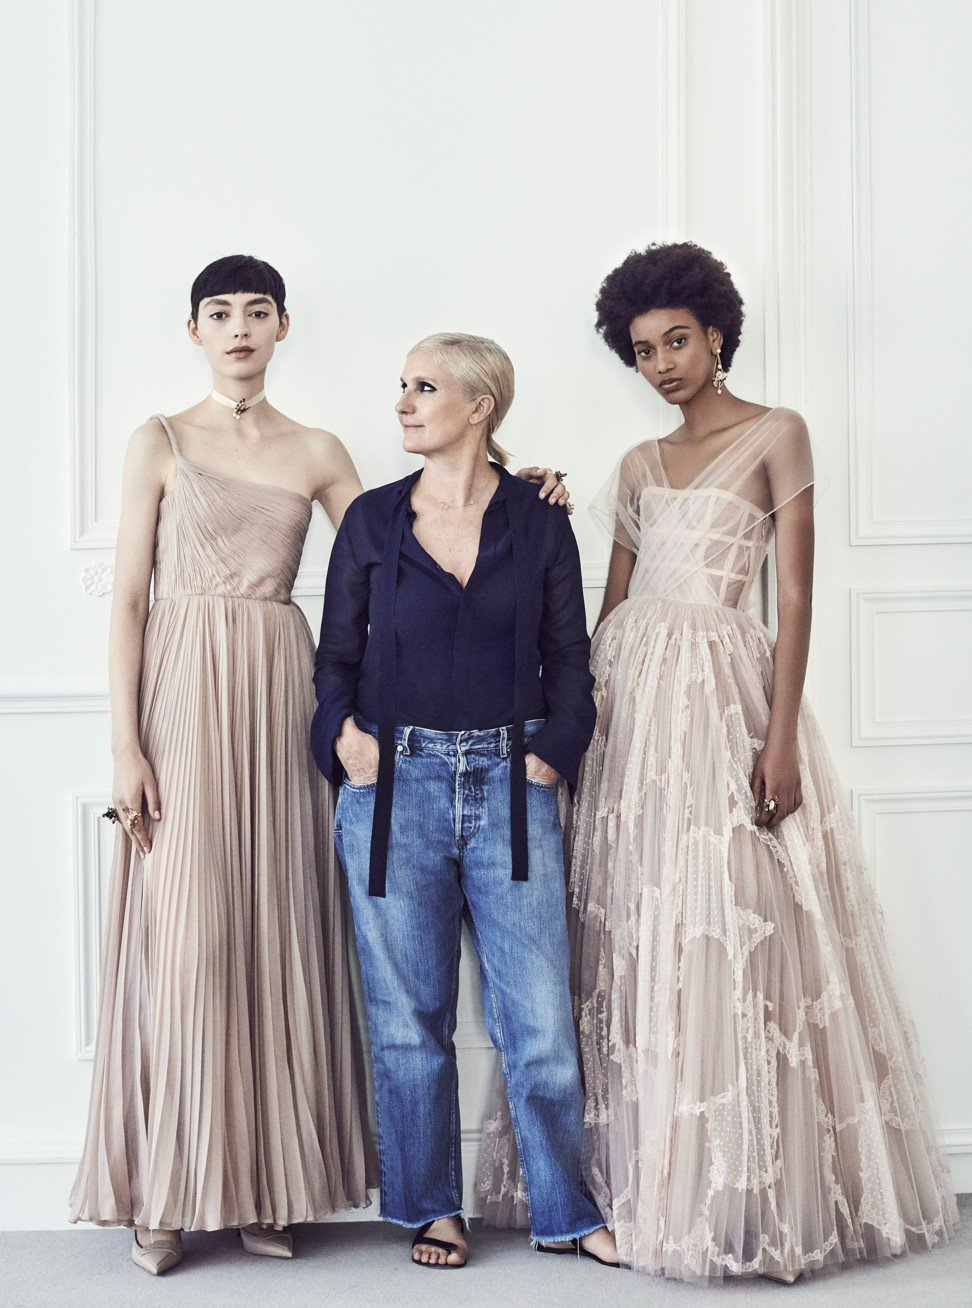 796cdf5fca44 Dior s artistic director Maria Grazia Chiuri with models featuring some of  her more feminine gowns